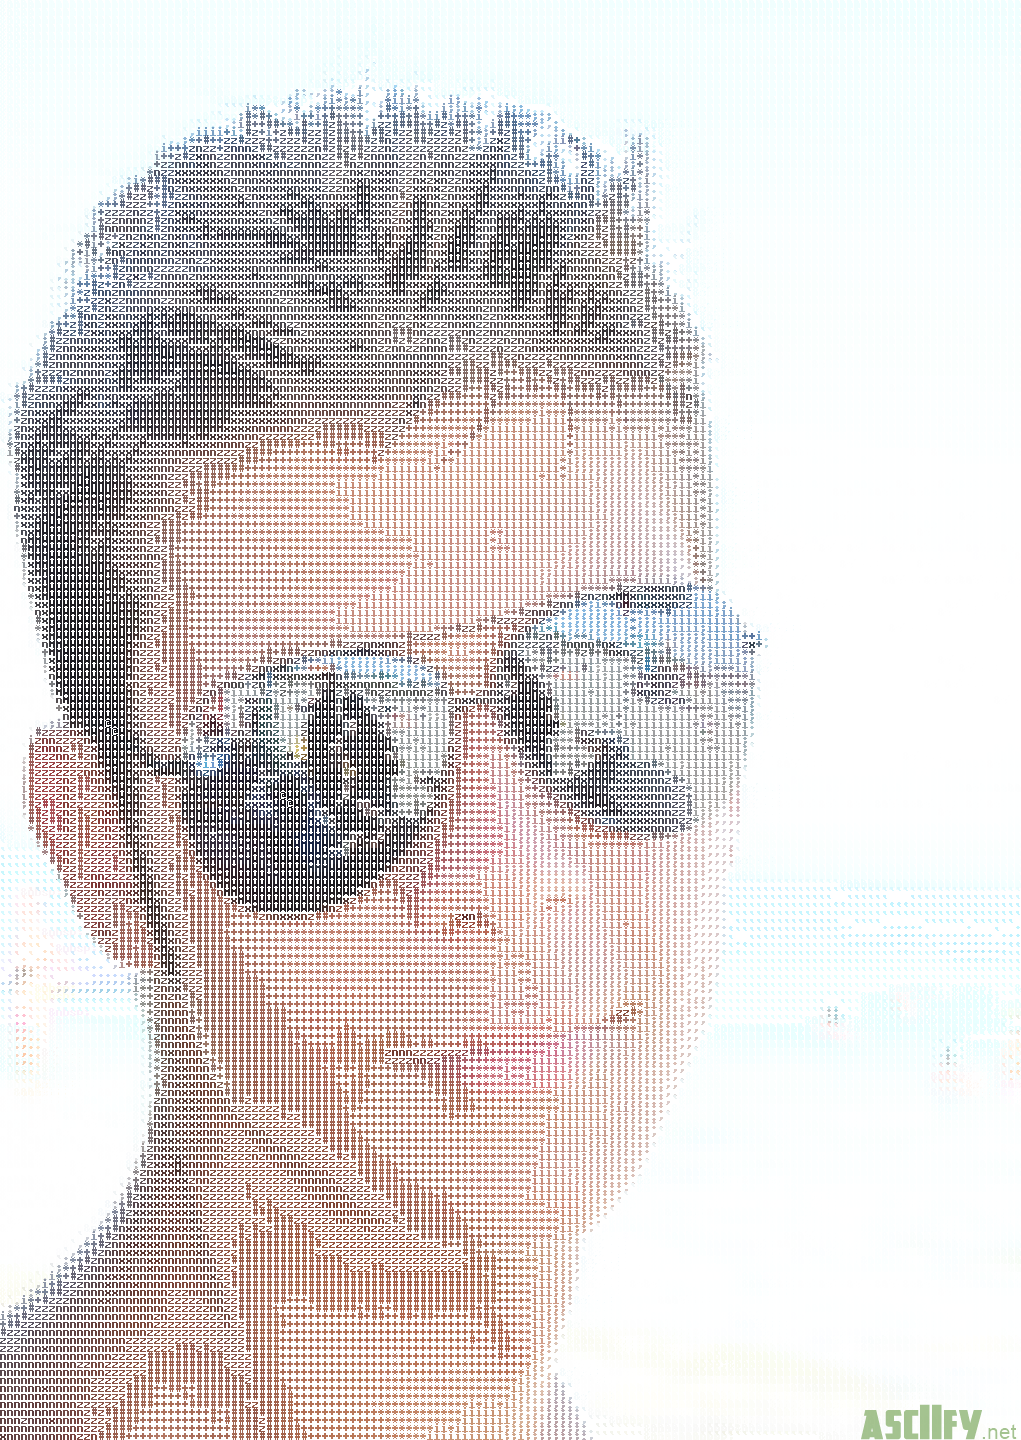 Cool guy with sunglasses